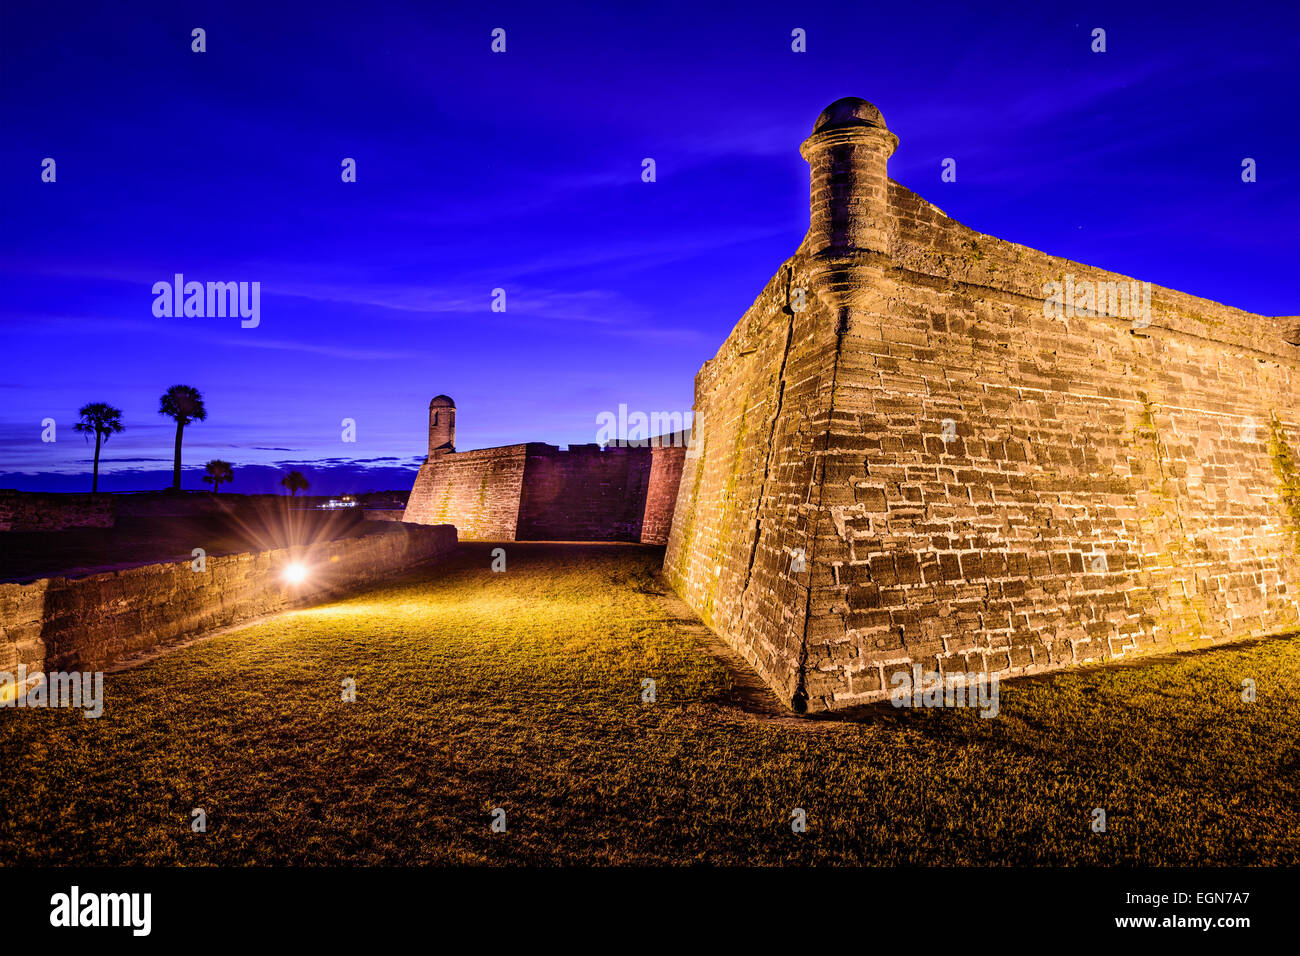 St. Augustine, Florida at the Castillo de San Marcos National Monument. - Stock Image